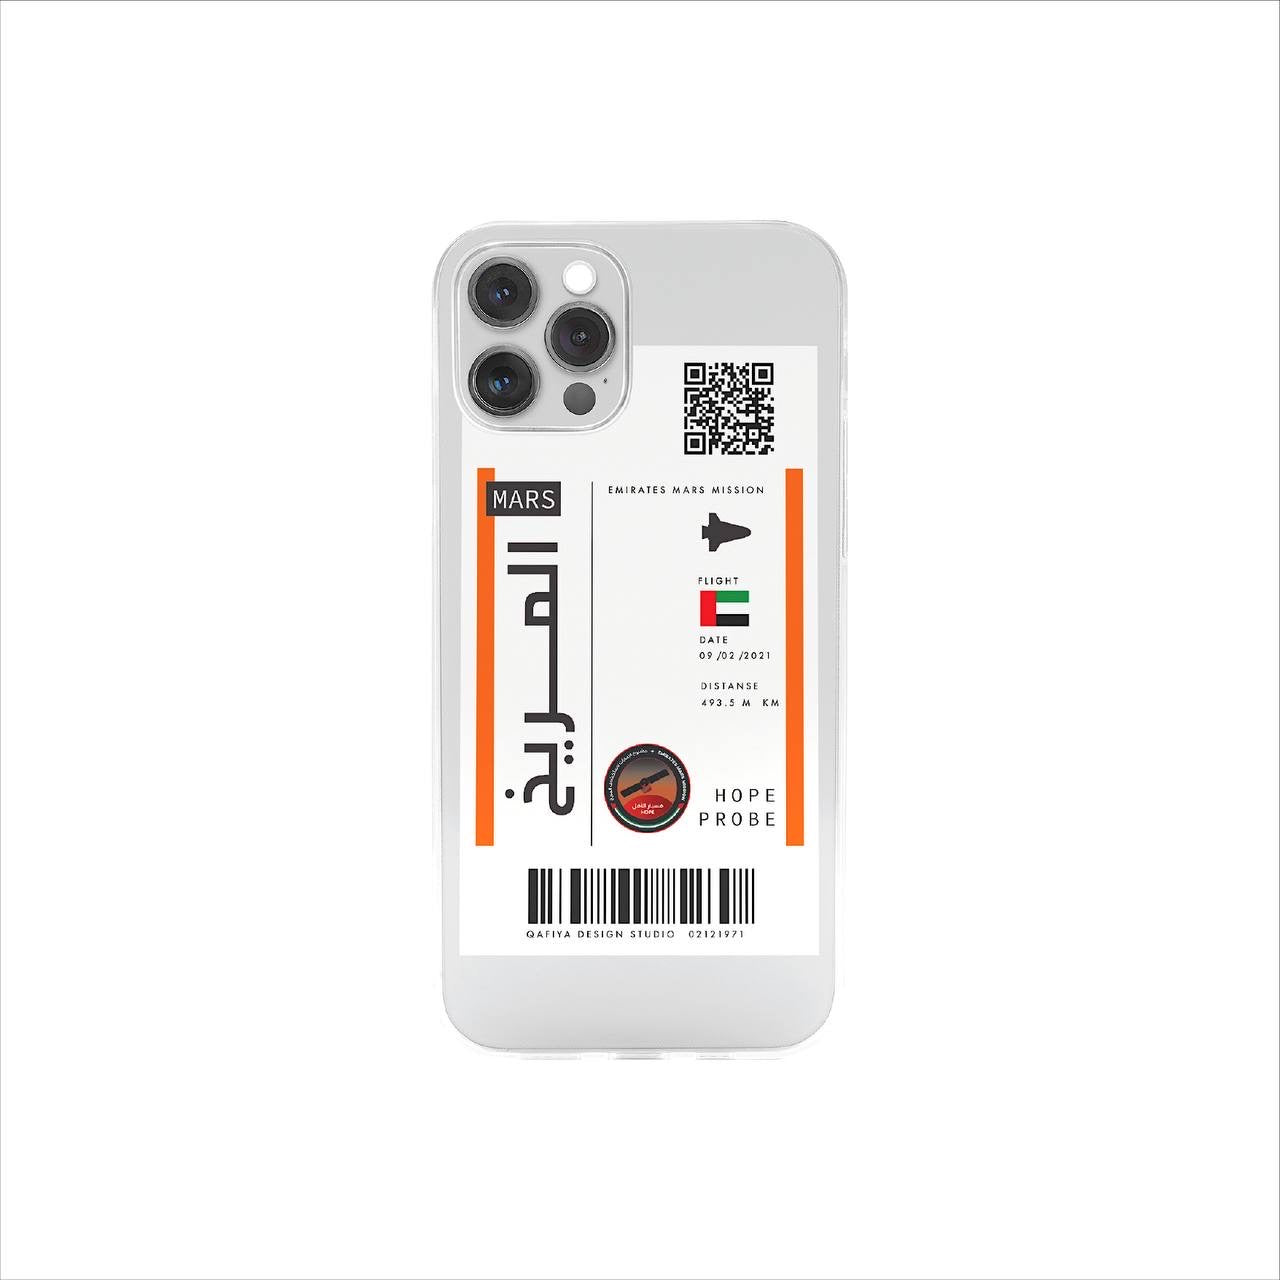 Emirates Mars Mission Case For Iphone